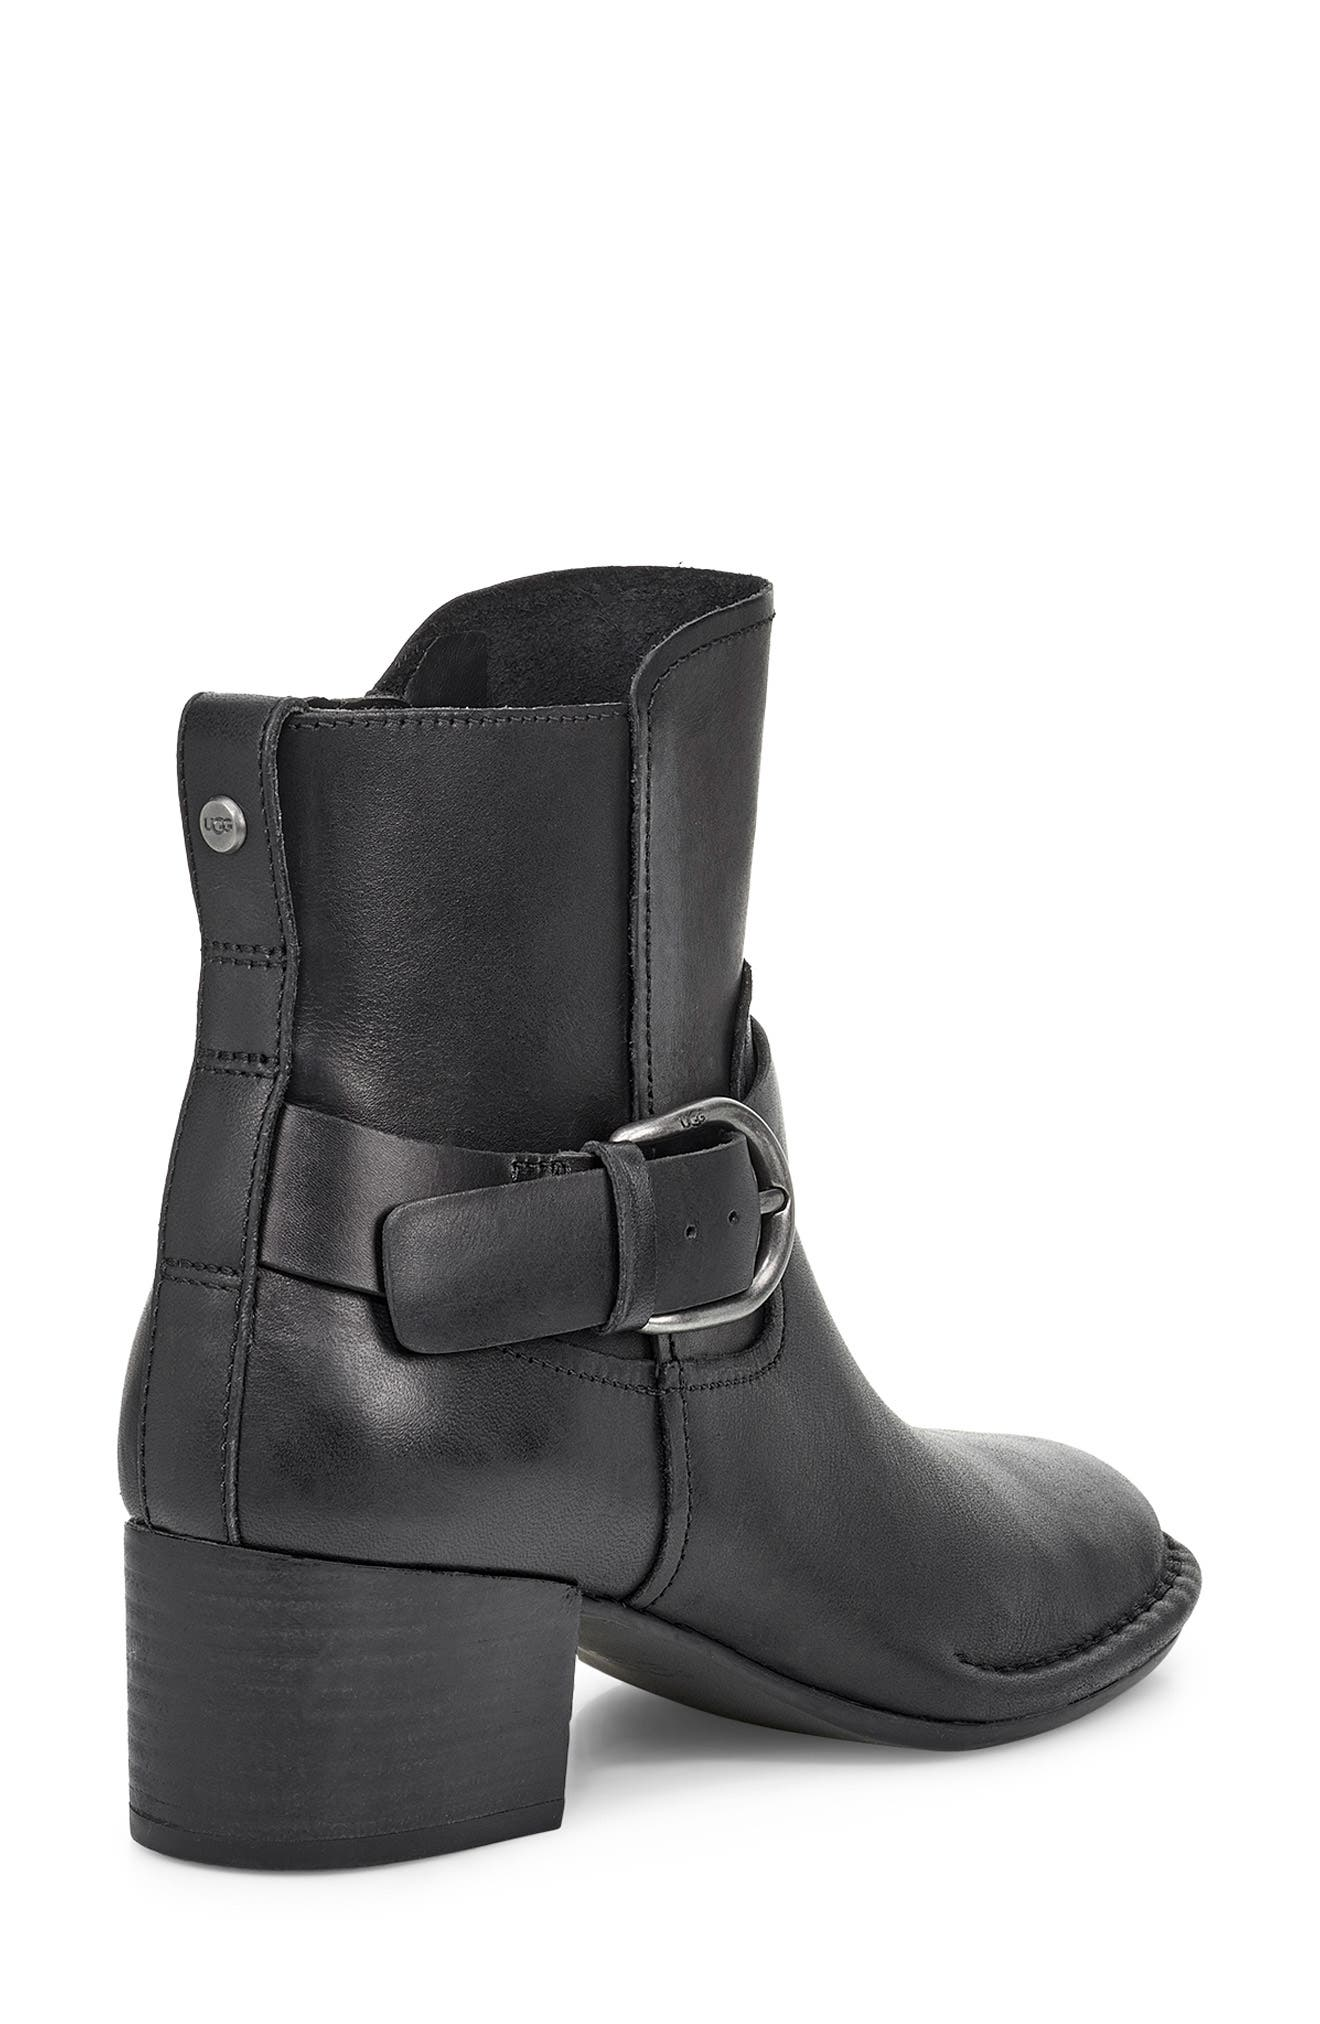 4a2453ea333 Women's UGG® Booties & Ankle Boots   Nordstrom